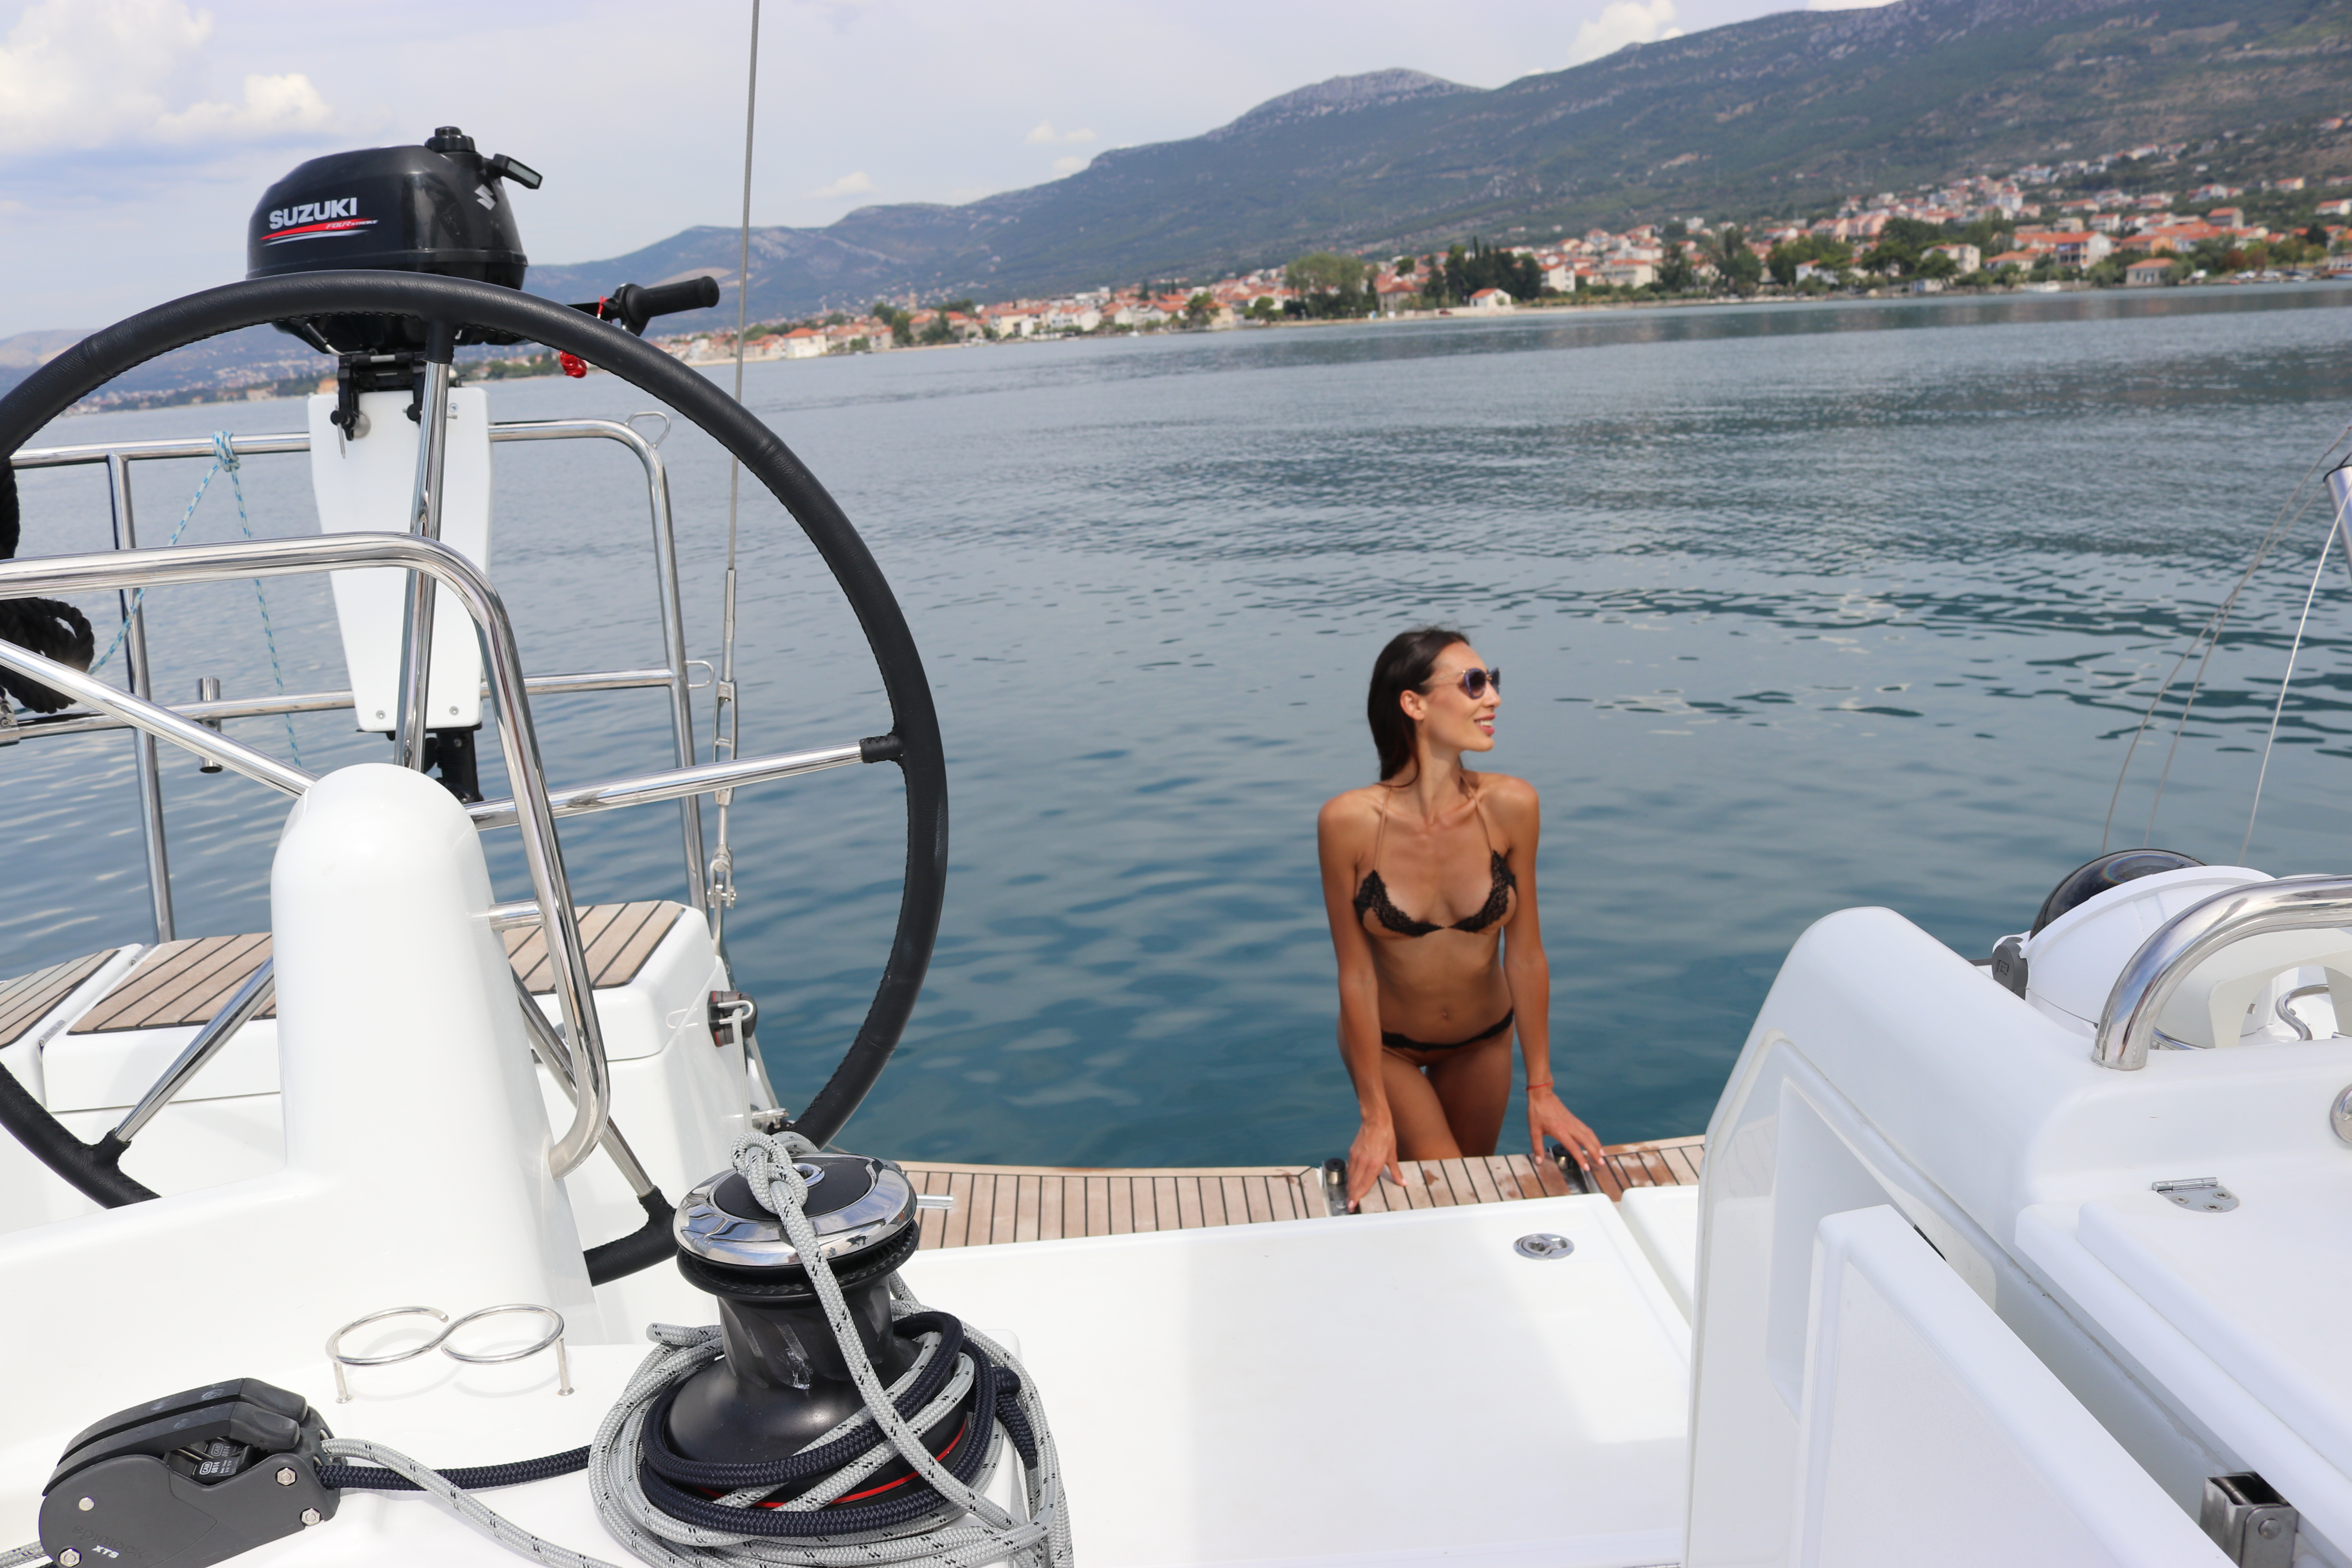 Sailing holiday in Croatia is an ultimate holiday trend in 2020